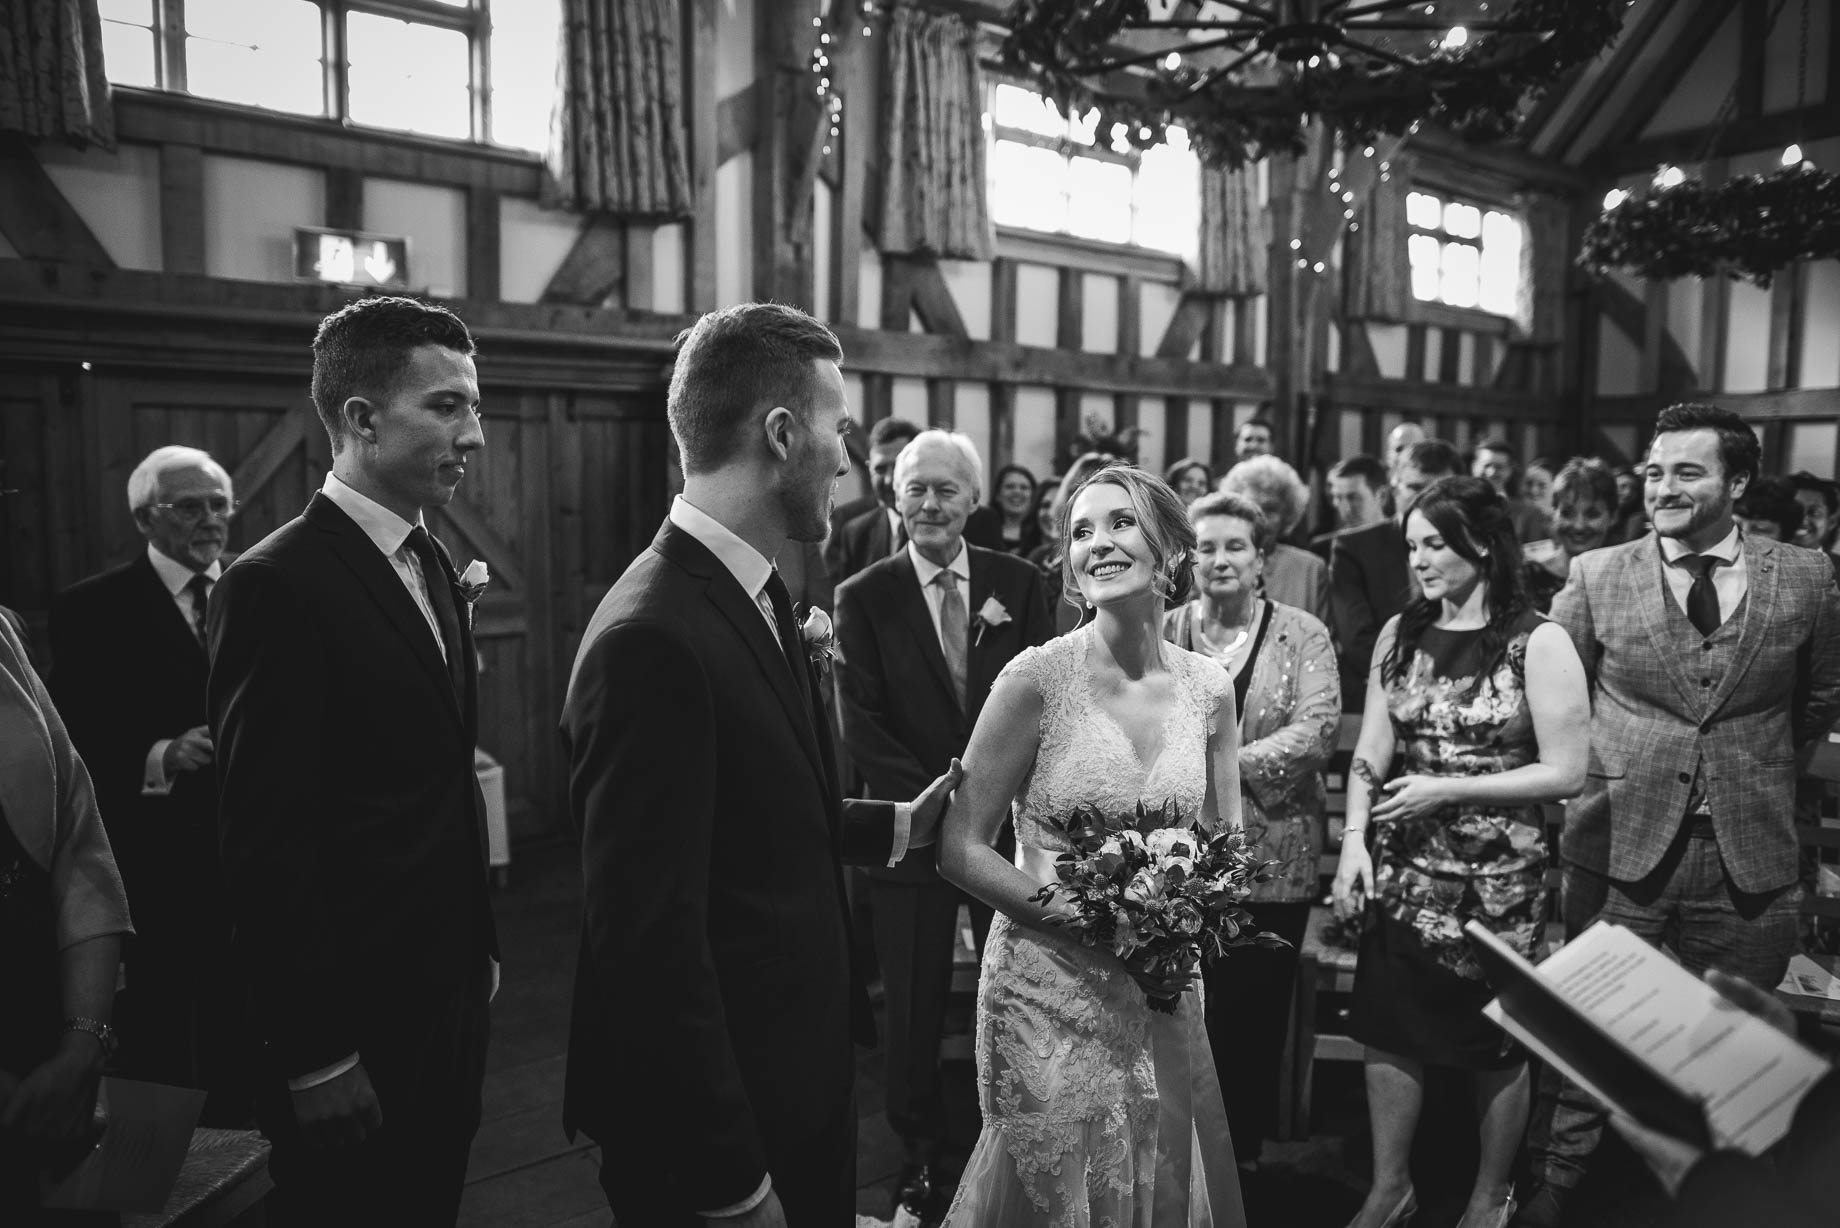 Surrey Wedding Photography by Guy Collier - Becca and James (34 of 145)